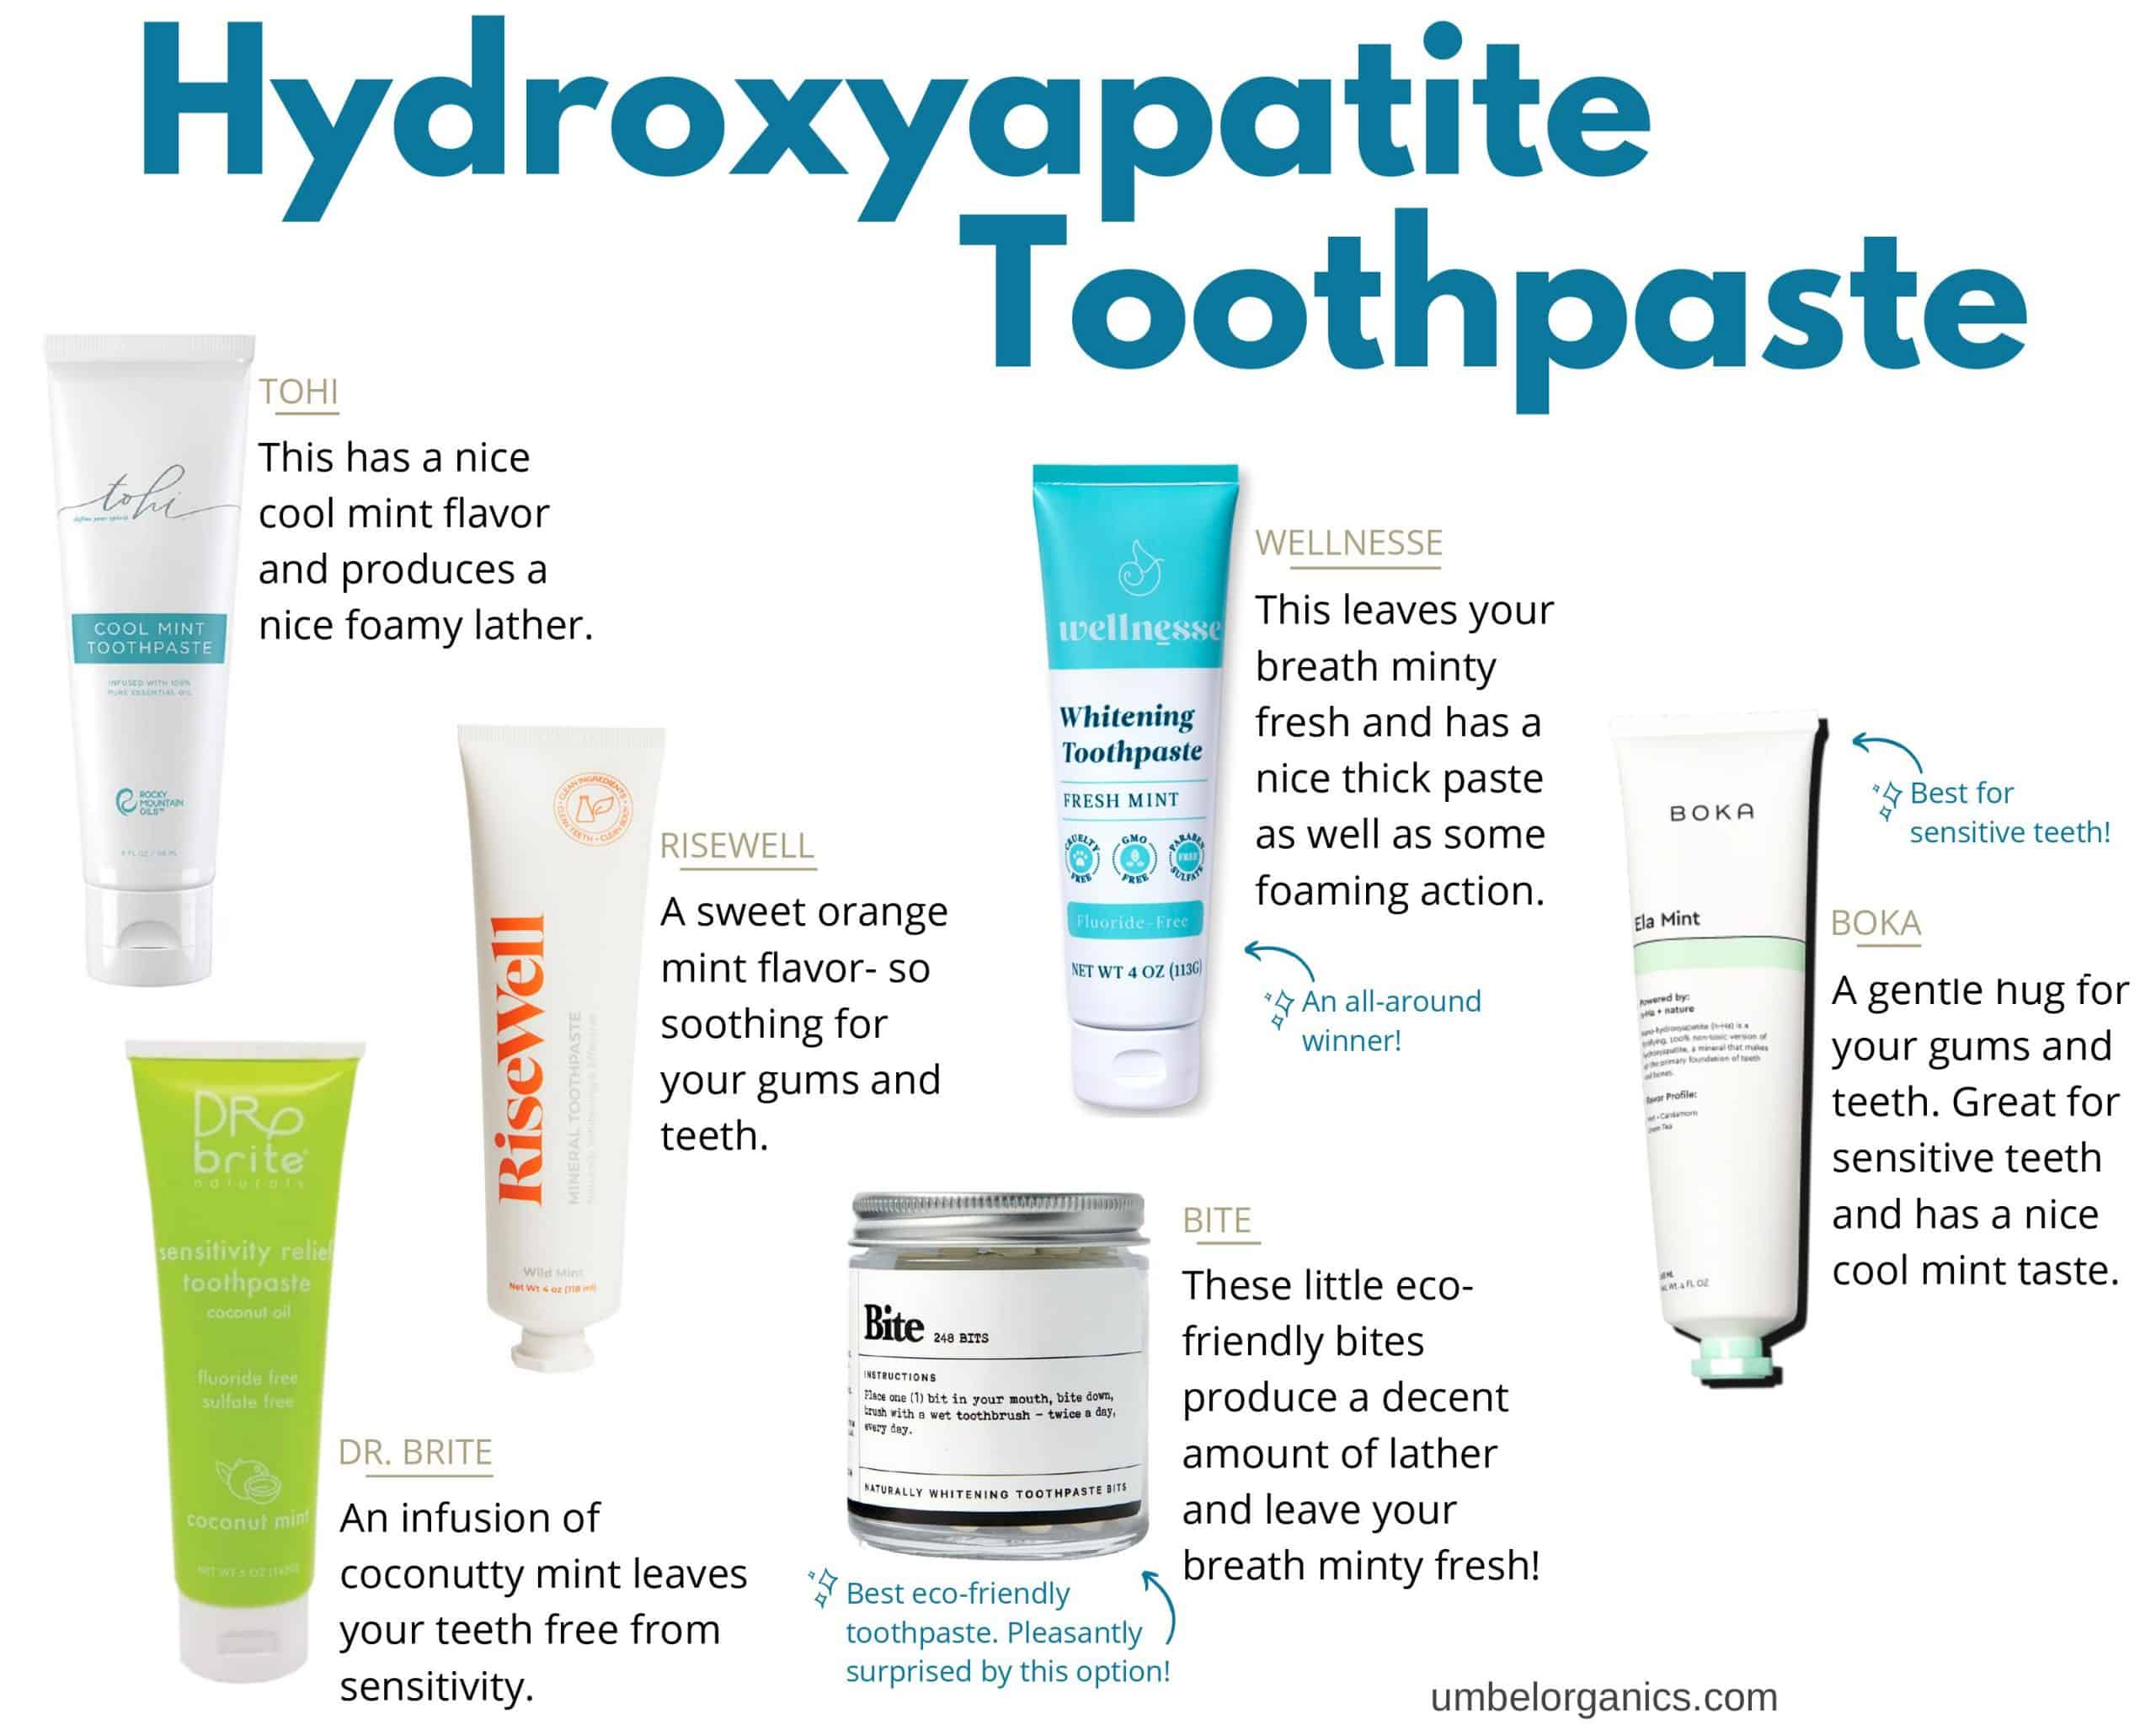 6 brands of hydroxyapatite toothpaste